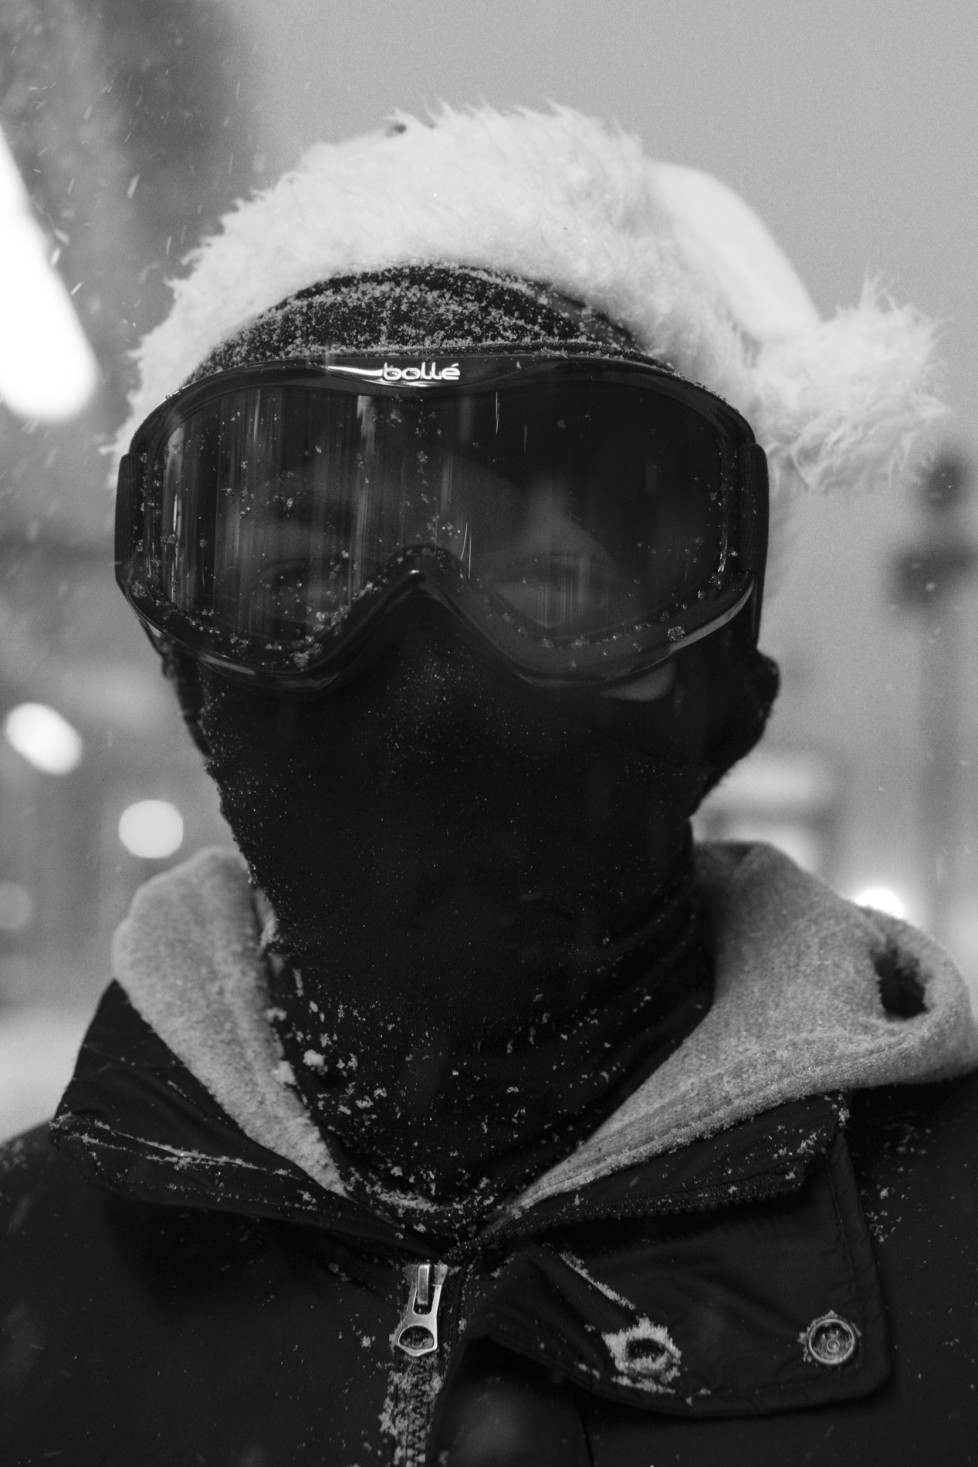 23 JAN 2016 - Washington Heights, New York City - Residents take to the streets and brave the first day of a blizzard affecting much of the northeast United States. New York City's first snowstorm of the year potentially will result in up to 30 inches (76 cm) of snowfall before Sunday. Combined work: Sarah Blesener and Cédric von Niederhäusern